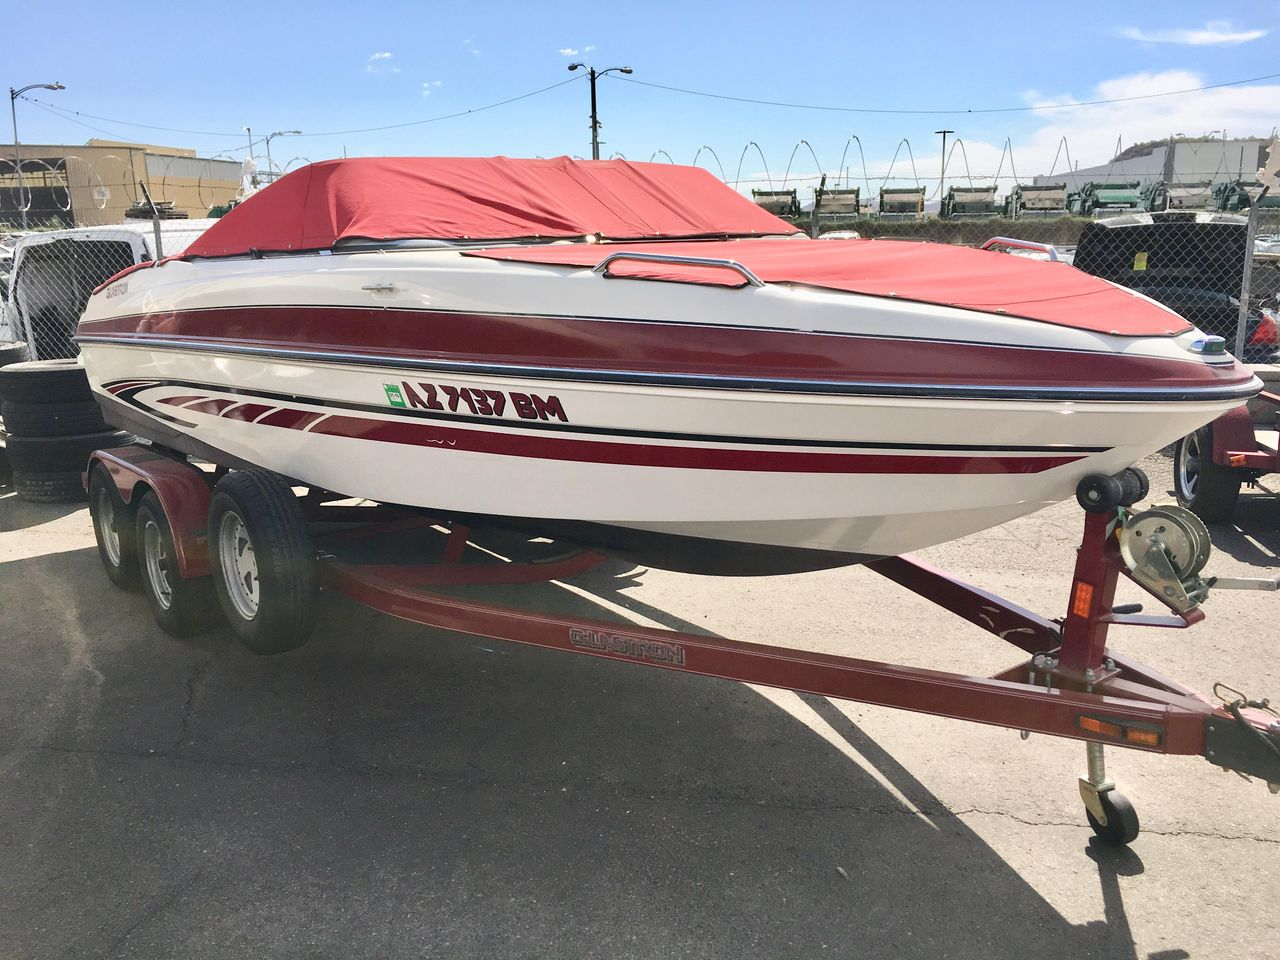 2007 Used Glastron GT 205 Bowrider Boat For Sale - $13,925